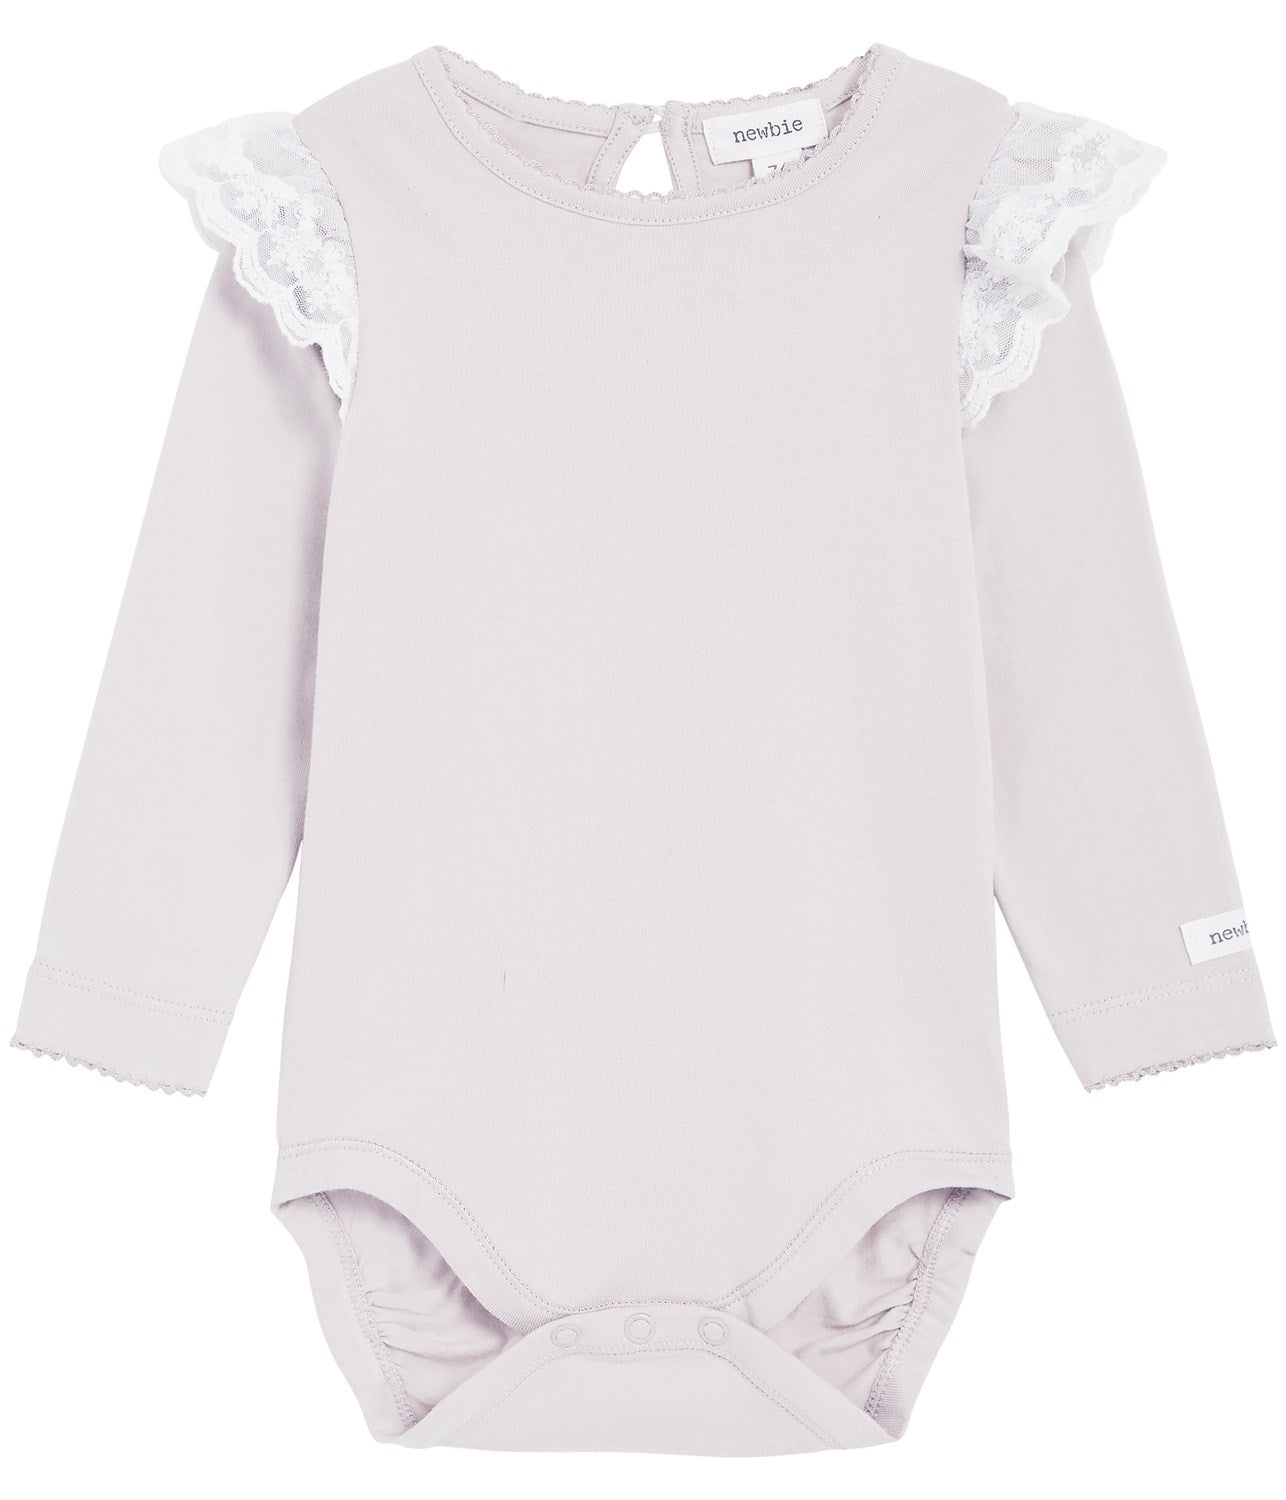 60154028a Baby Organic Clothes - Newbie Store